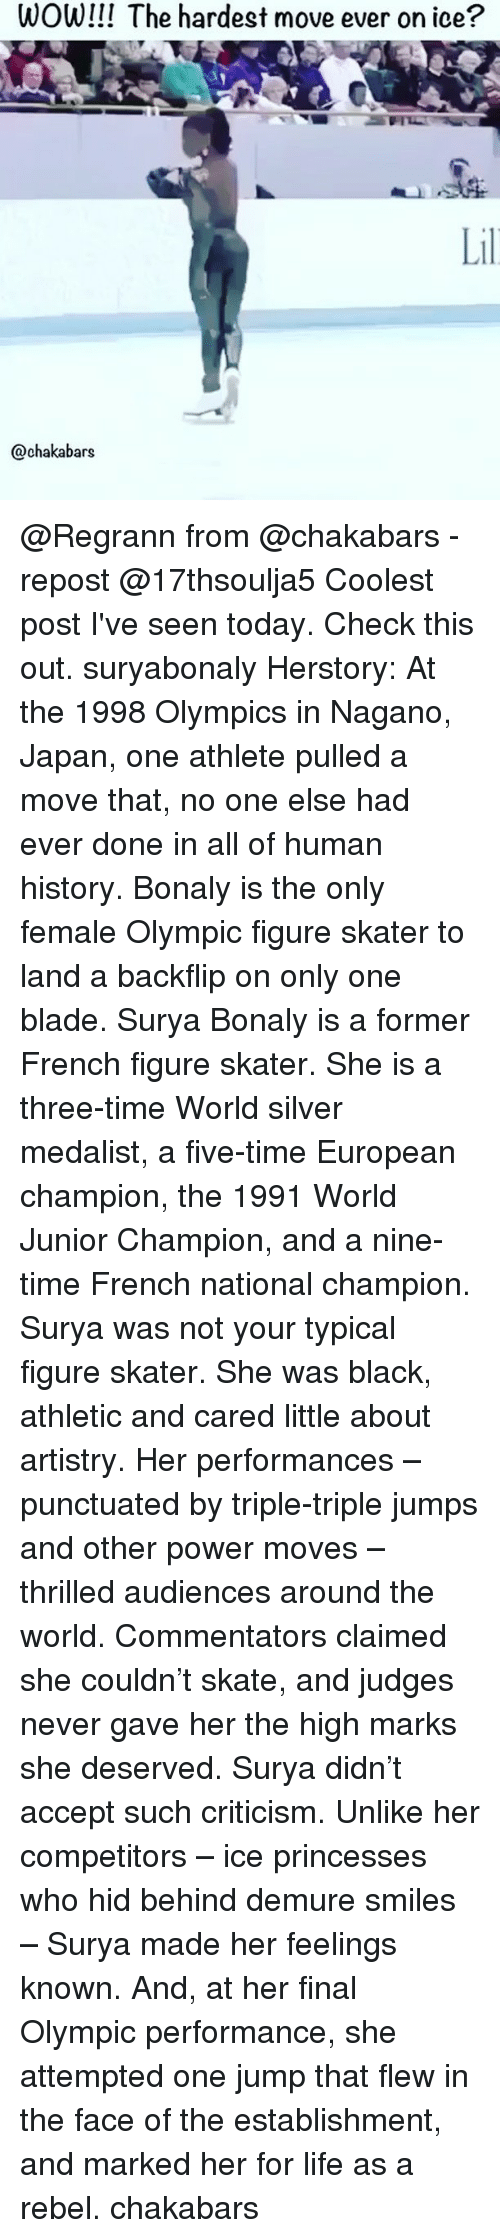 Blade, Life, and Memes: WOW!!! The hardest move ever on ice?  Lil  @chakabars @Regrann from @chakabars - repost @17thsoulja5 Coolest post I've seen today. Check this out. suryabonaly Herstory: At the 1998 Olympics in Nagano, Japan, one athlete pulled a move that, no one else had ever done in all of human history. Bonaly is the only female Olympic figure skater to land a backflip on only one blade. Surya Bonaly is a former French figure skater. She is a three-time World silver medalist, a five-time European champion, the 1991 World Junior Champion, and a nine-time French national champion. Surya was not your typical figure skater. She was black, athletic and cared little about artistry. Her performances – punctuated by triple-triple jumps and other power moves – thrilled audiences around the world. Commentators claimed she couldn't skate, and judges never gave her the high marks she deserved. Surya didn't accept such criticism. Unlike her competitors – ice princesses who hid behind demure smiles – Surya made her feelings known. And, at her final Olympic performance, she attempted one jump that flew in the face of the establishment, and marked her for life as a rebel. chakabars